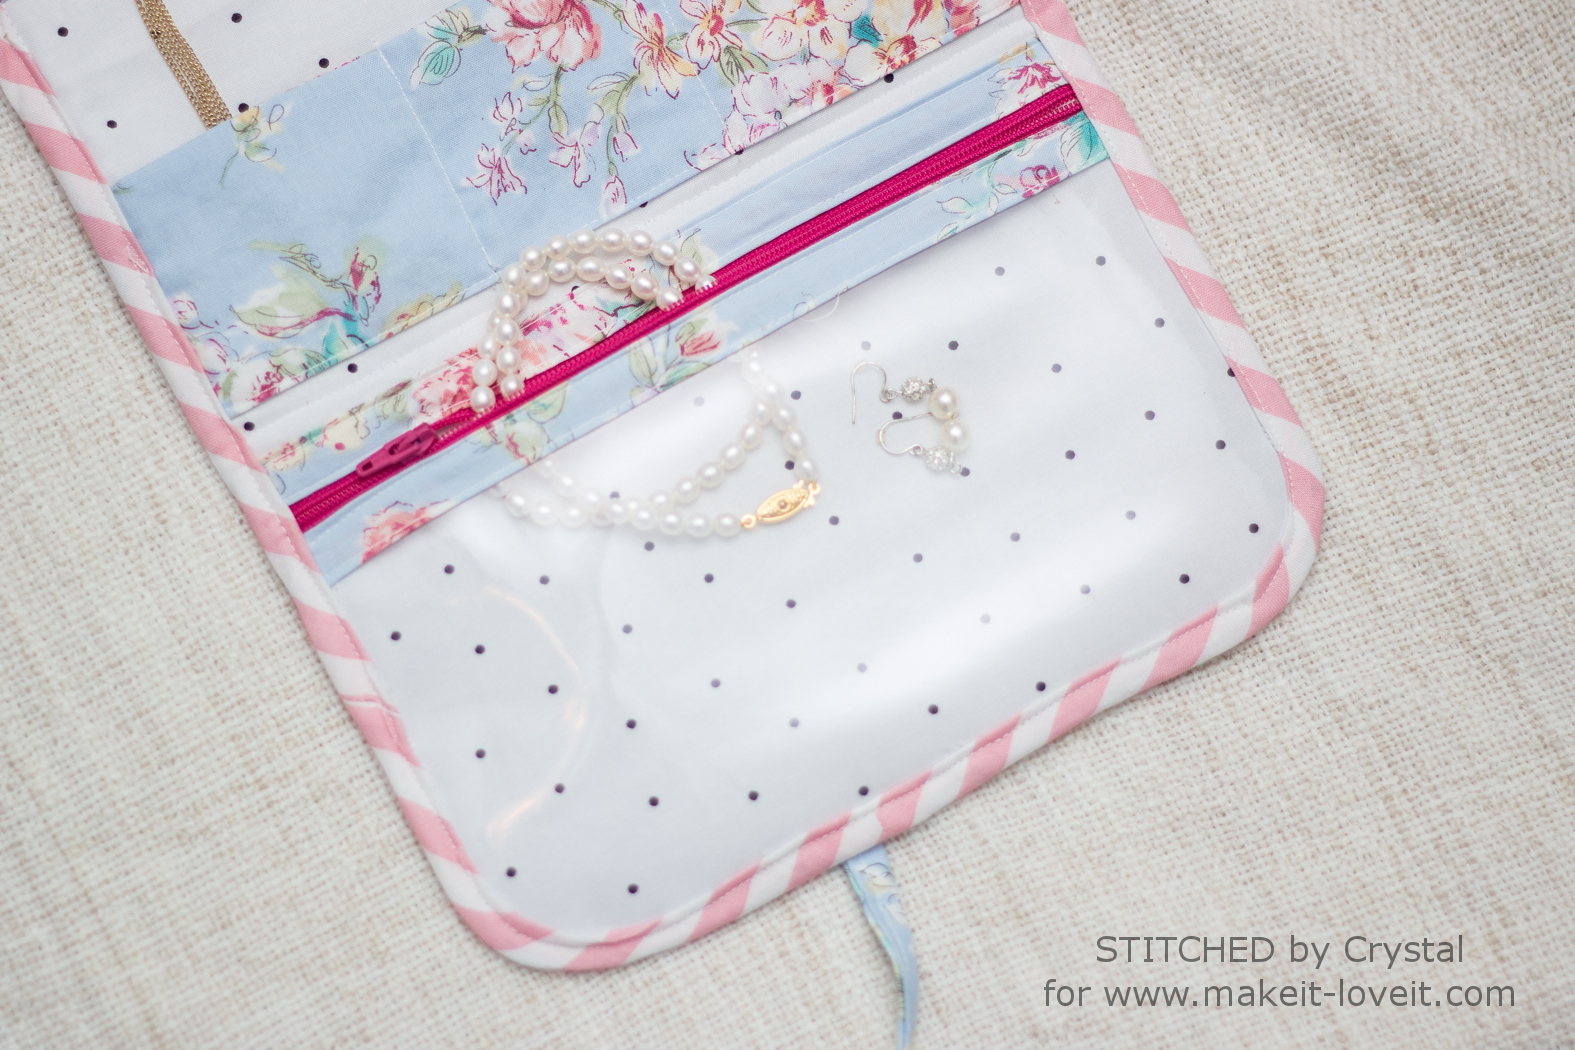 Travel Jewelry Clutch Tutorial....no more tangled or lost jewelry! | via makeit-loveit.com